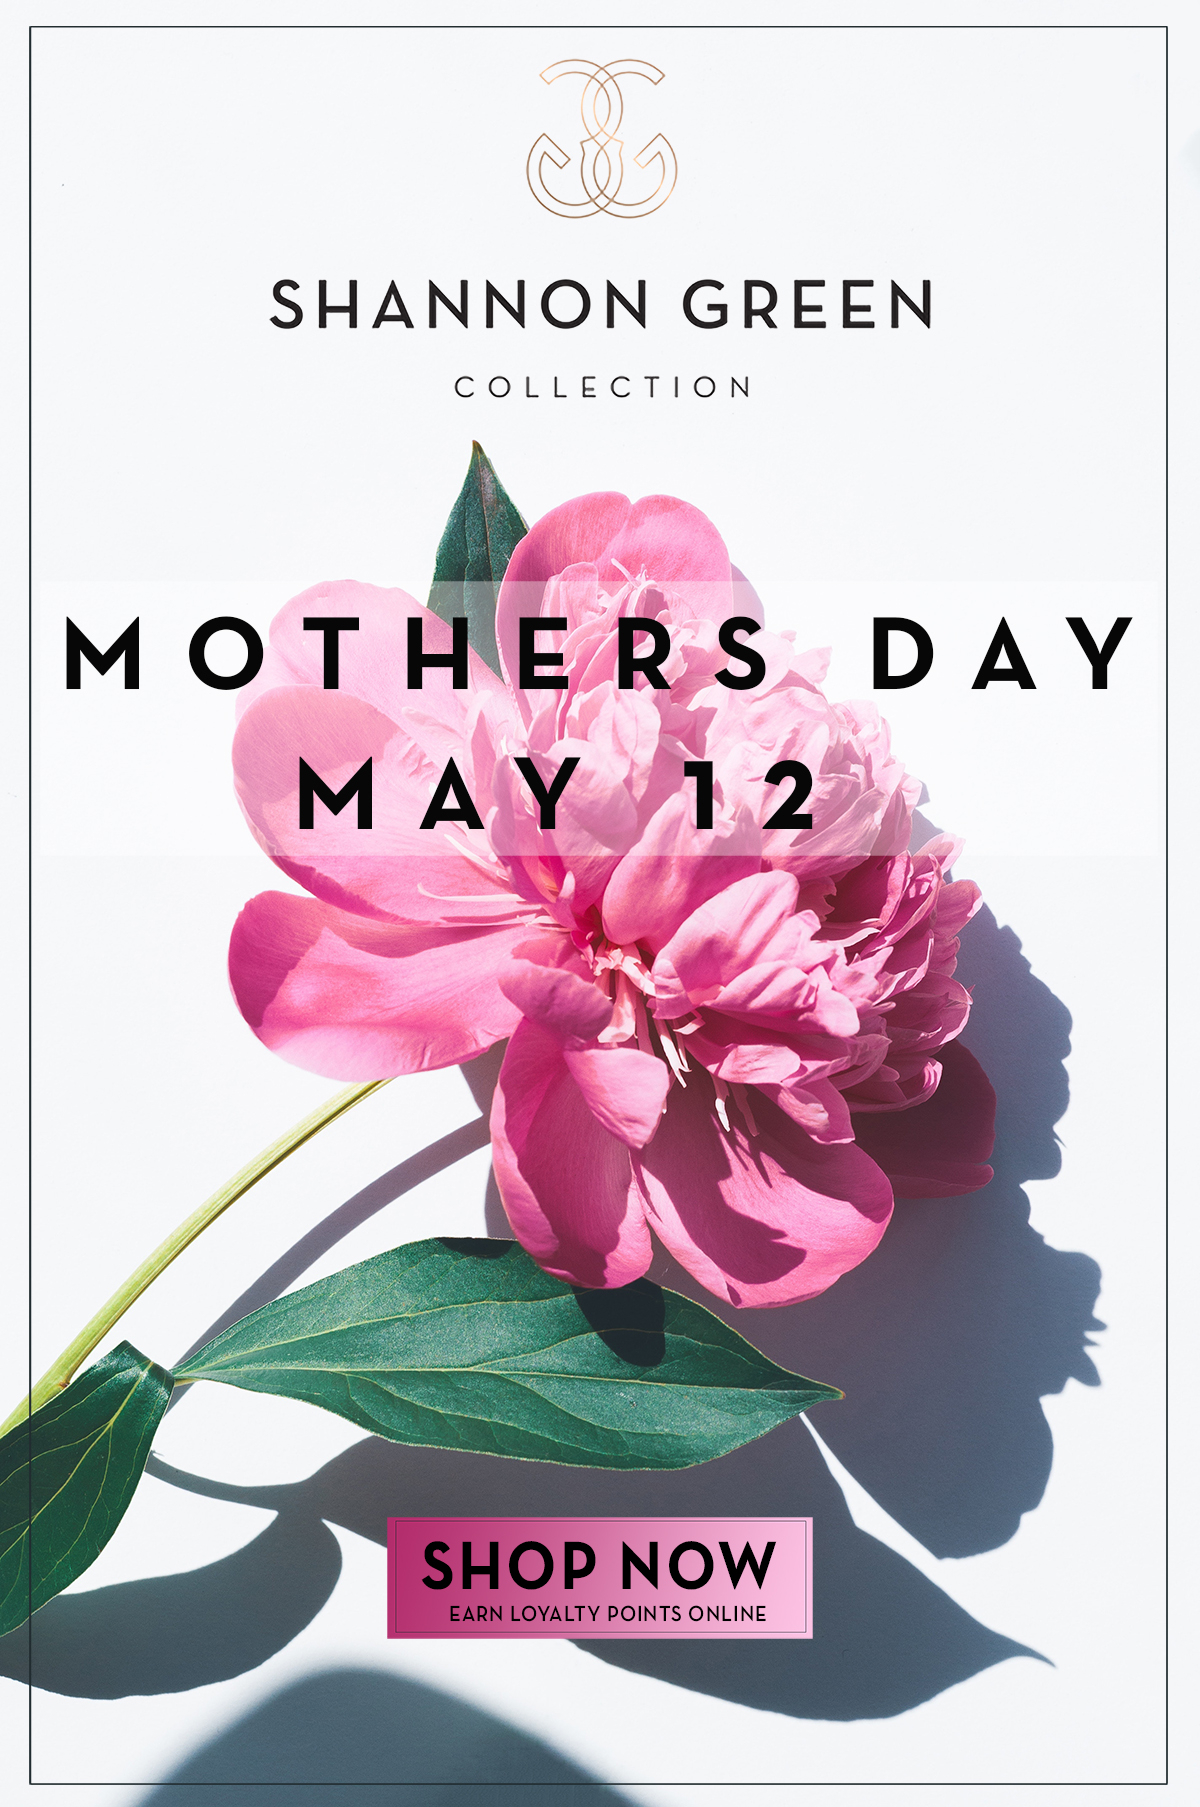 Shannon Green Mothers Day Shopping Fine Jewelry.jpg